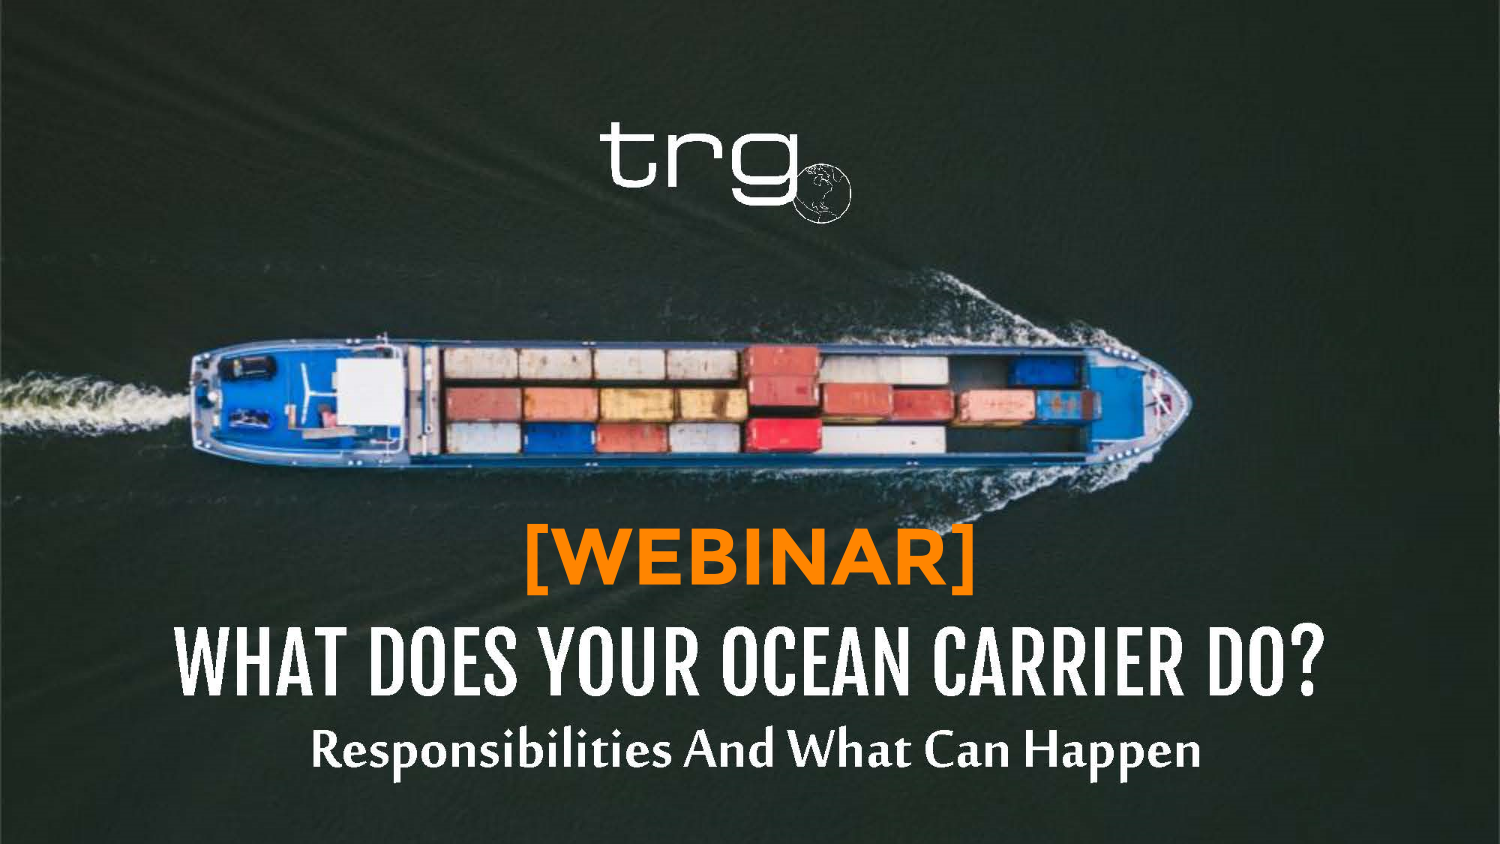 [Webinar] What is Your Ocean Carrier Responsible For?